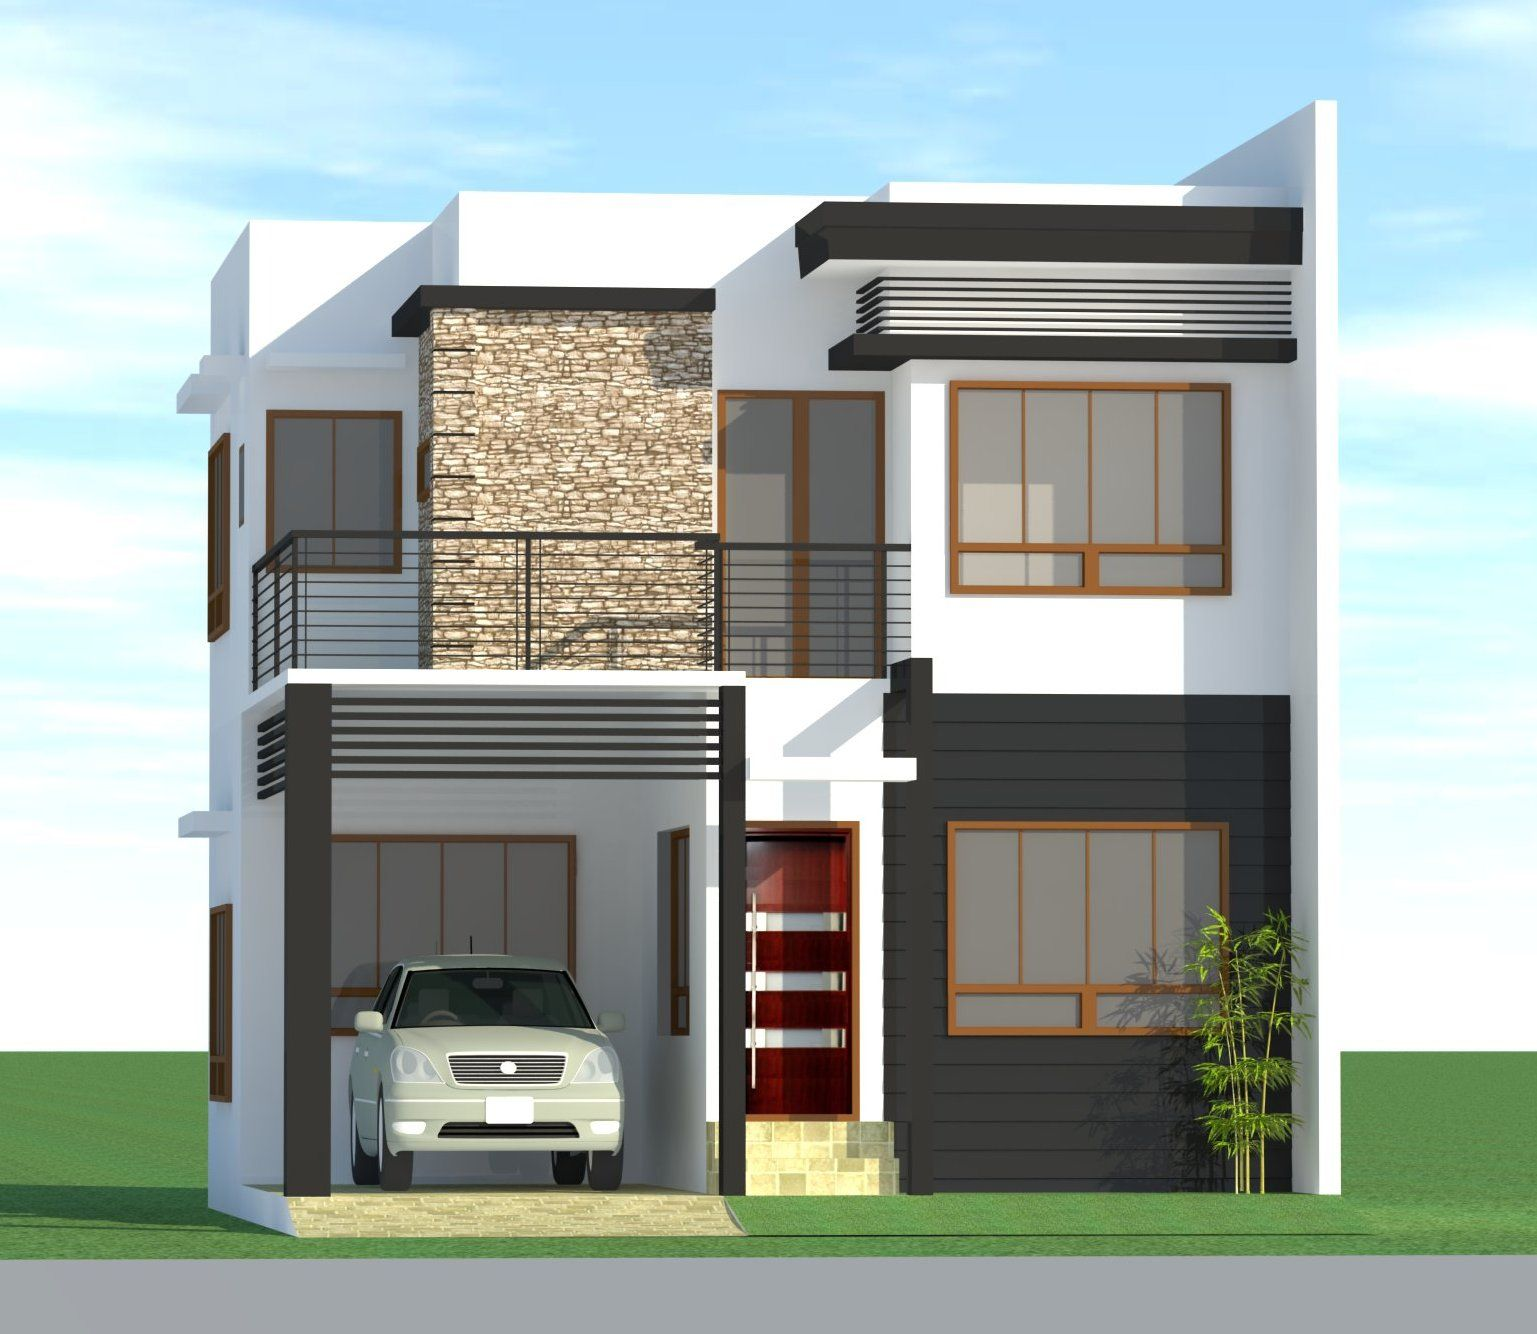 Philippines house design images 3 home design ideas Cheap modern house design